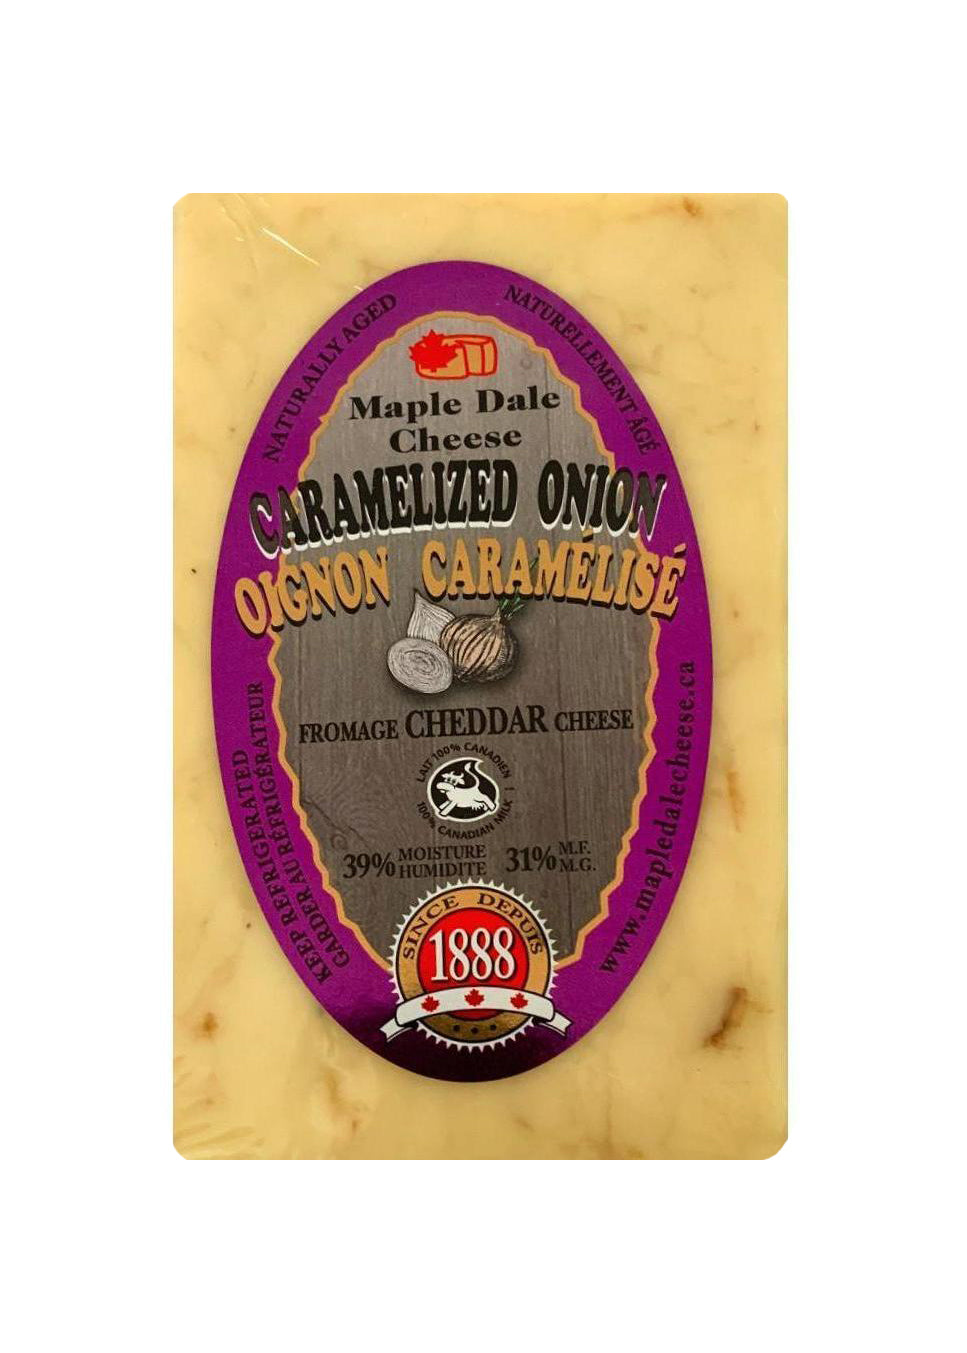 Caramelized Onion Cheddar Cheese - Maple Dale